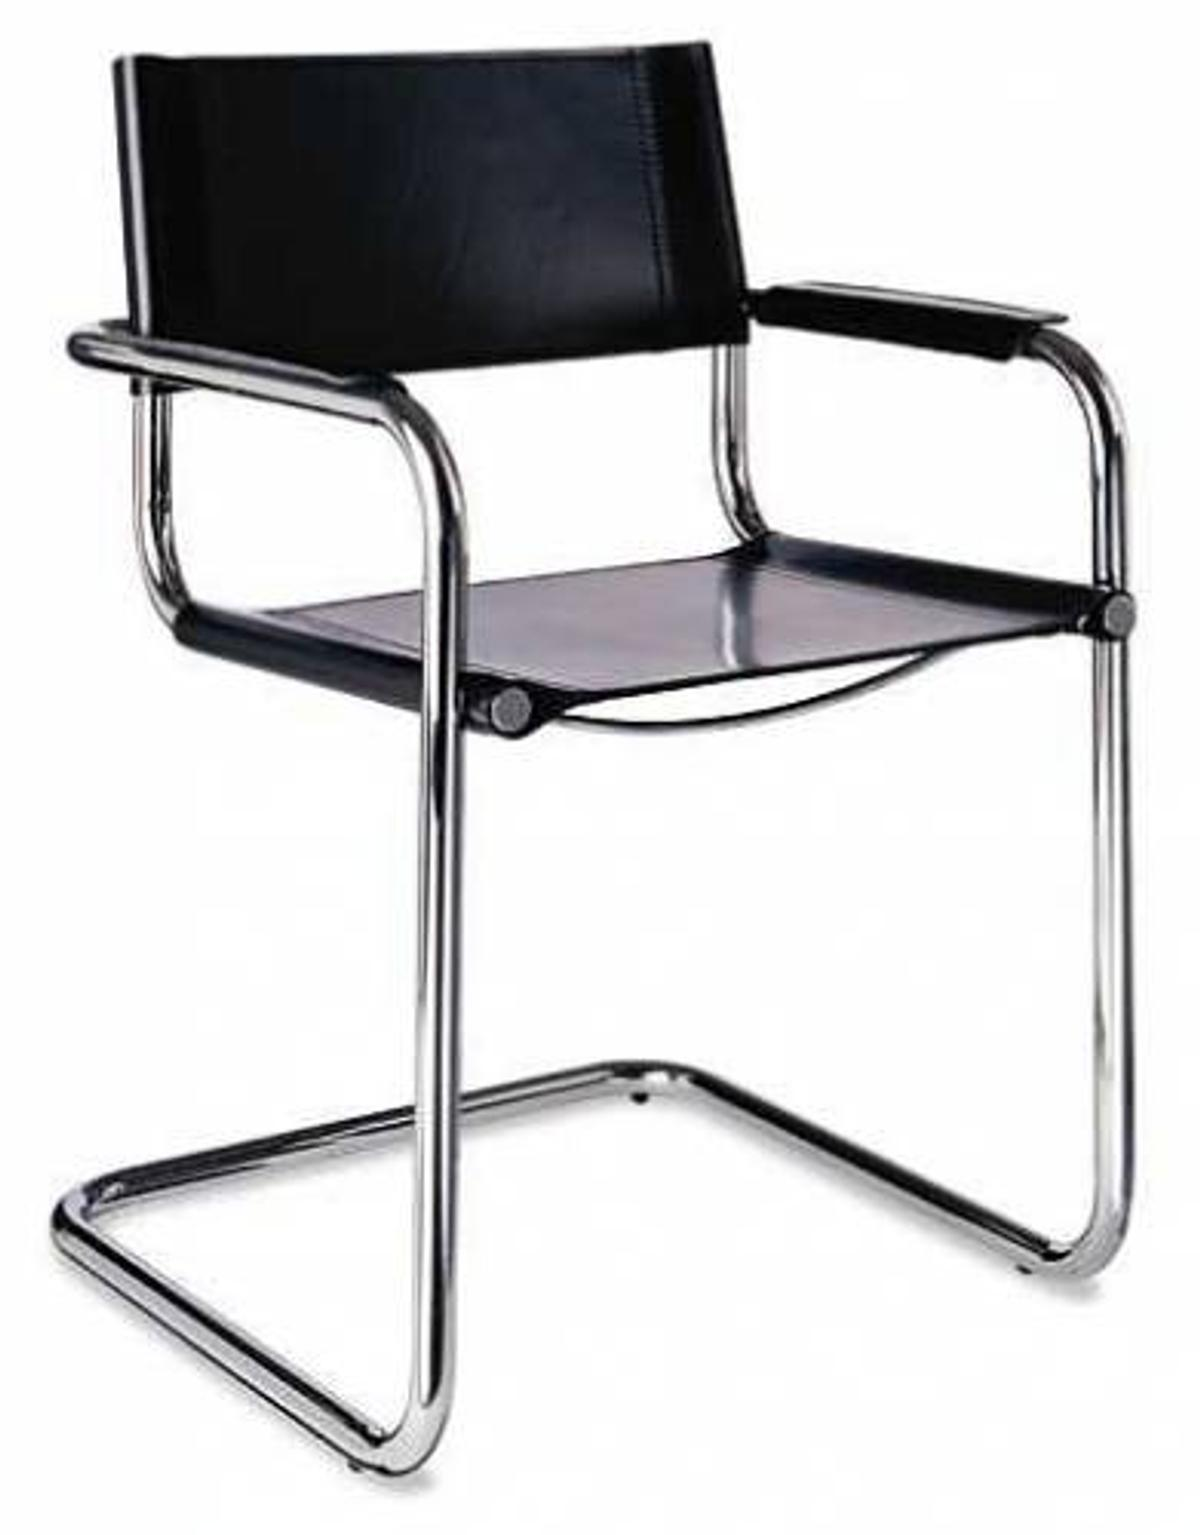 Sedie Tipo Thonet Usate.12 Sedie Cantilever Usate Delta Thonet